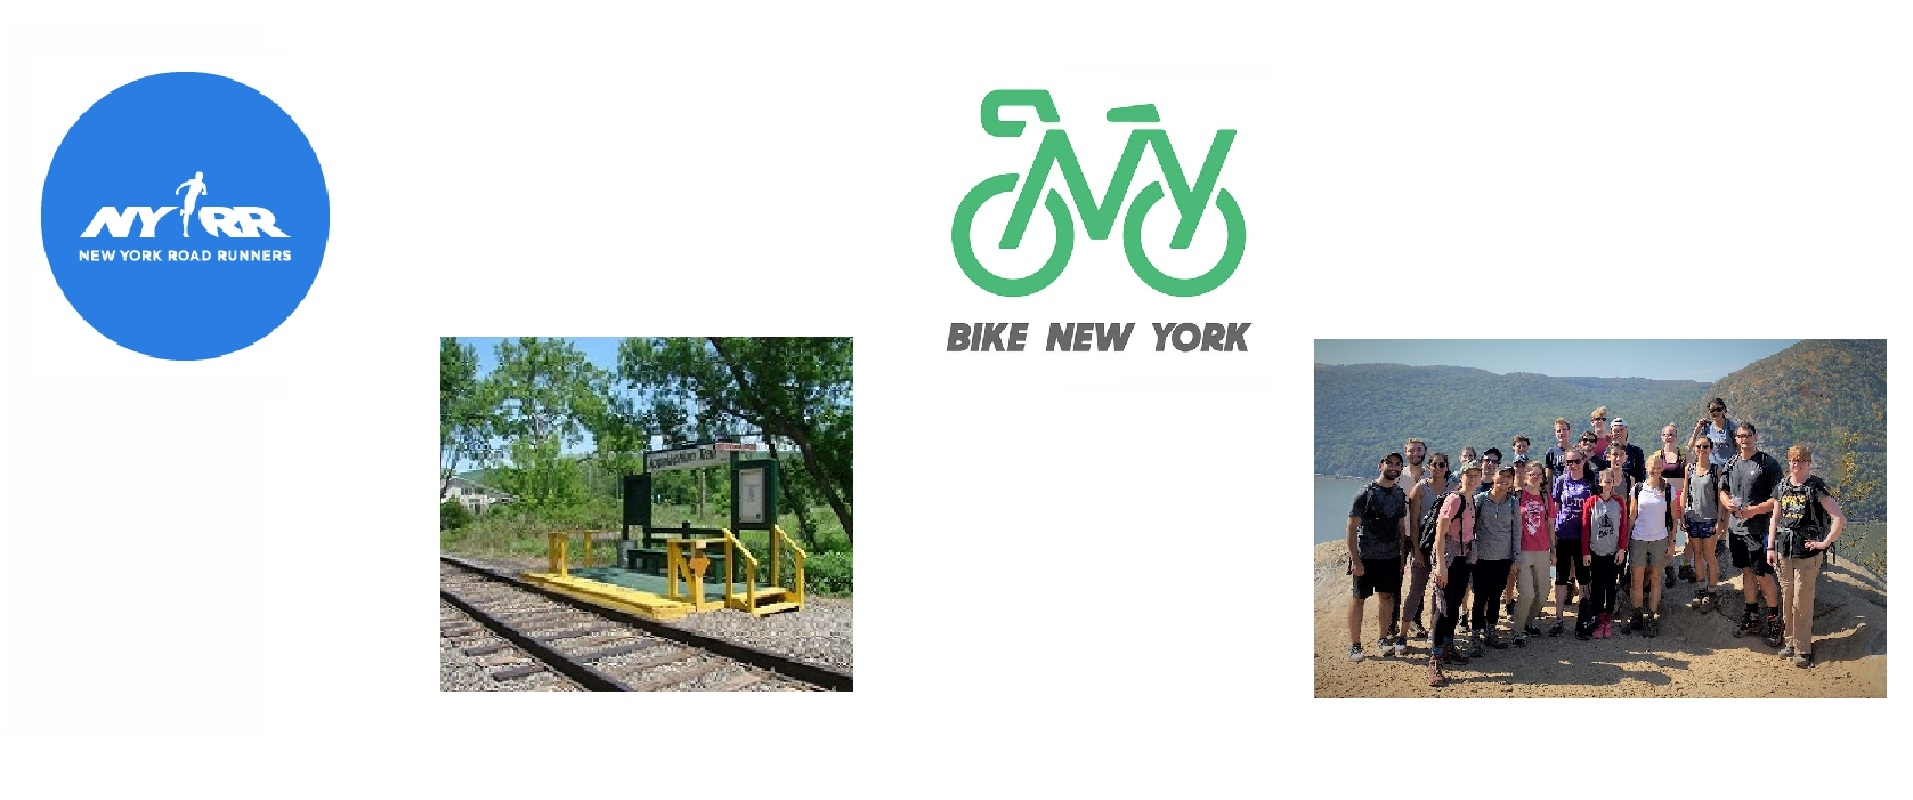 NYRR and Bike NY Logos with MTA AT and MD-PhD Hike Picutres